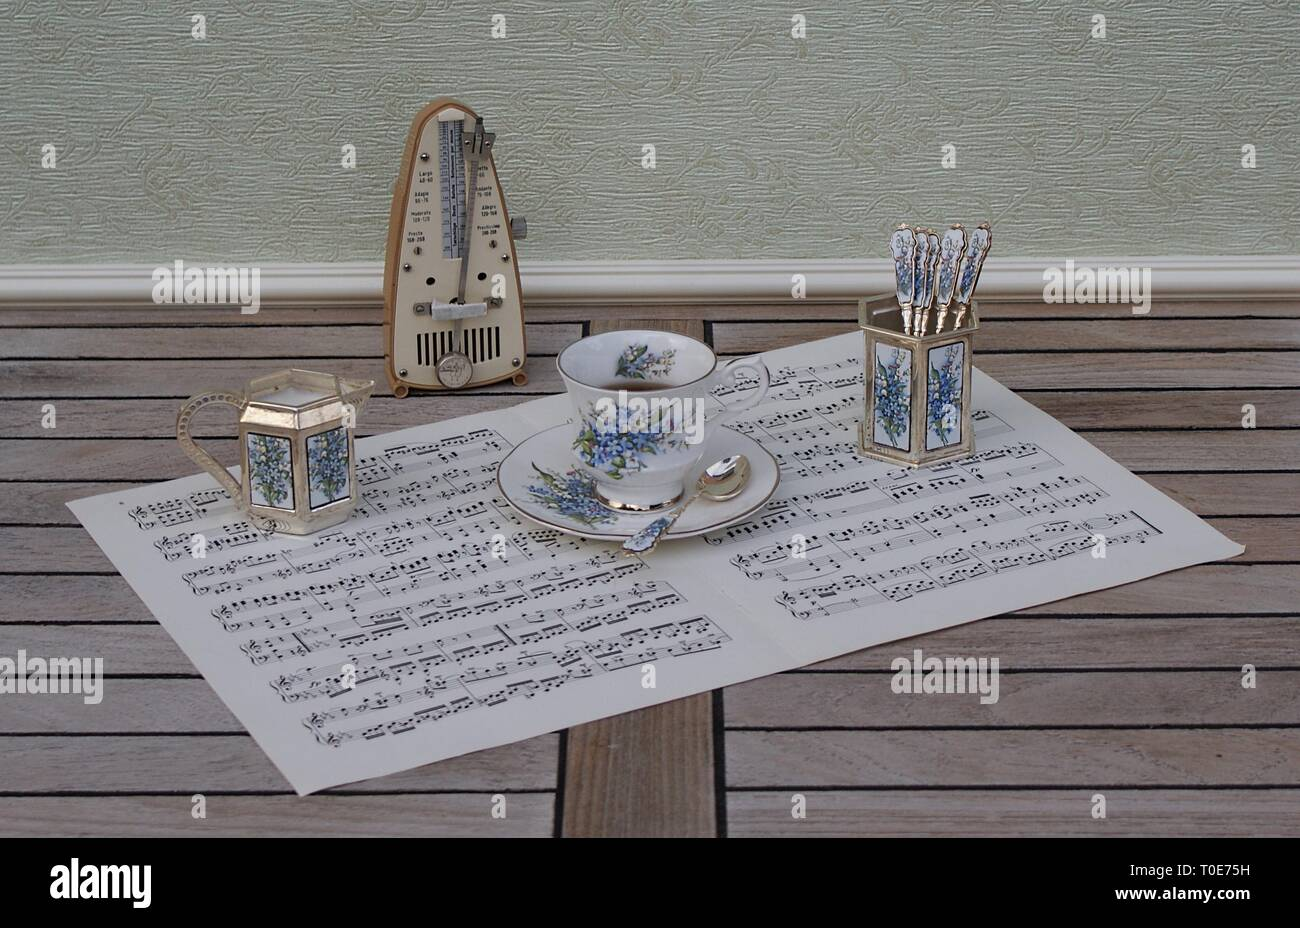 English teacup and saucer, spoon vase, teaspoon and cream jug and metronome for music on a sheet of music - Stock Image